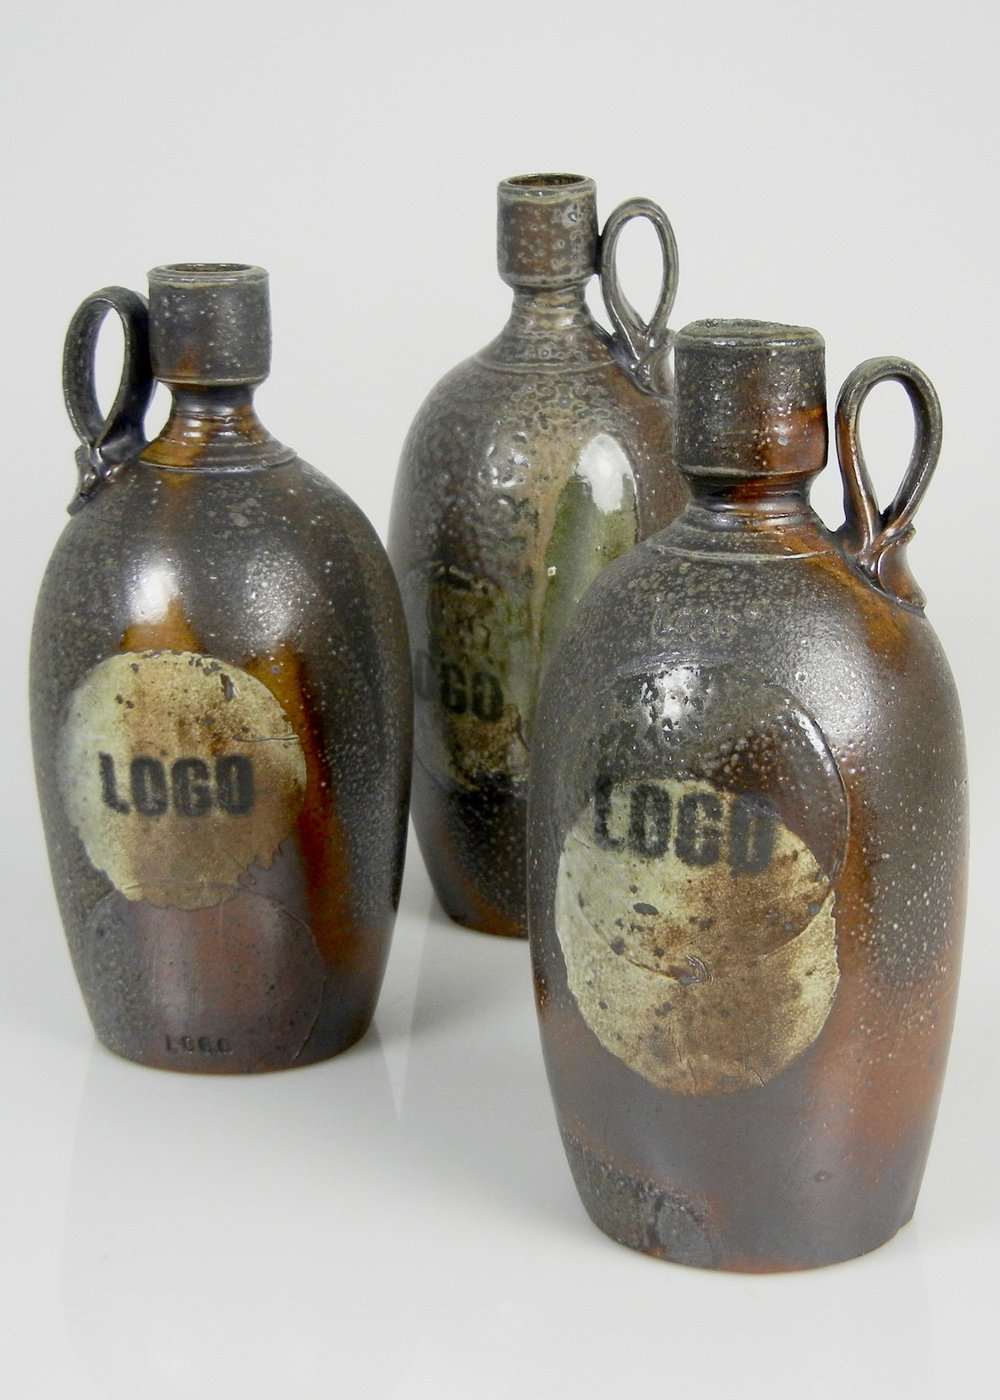 Lorenz Pottery, ceramics, pottery, folk pottery, wood fired, soda fired, jug, jugs, bottle, logo